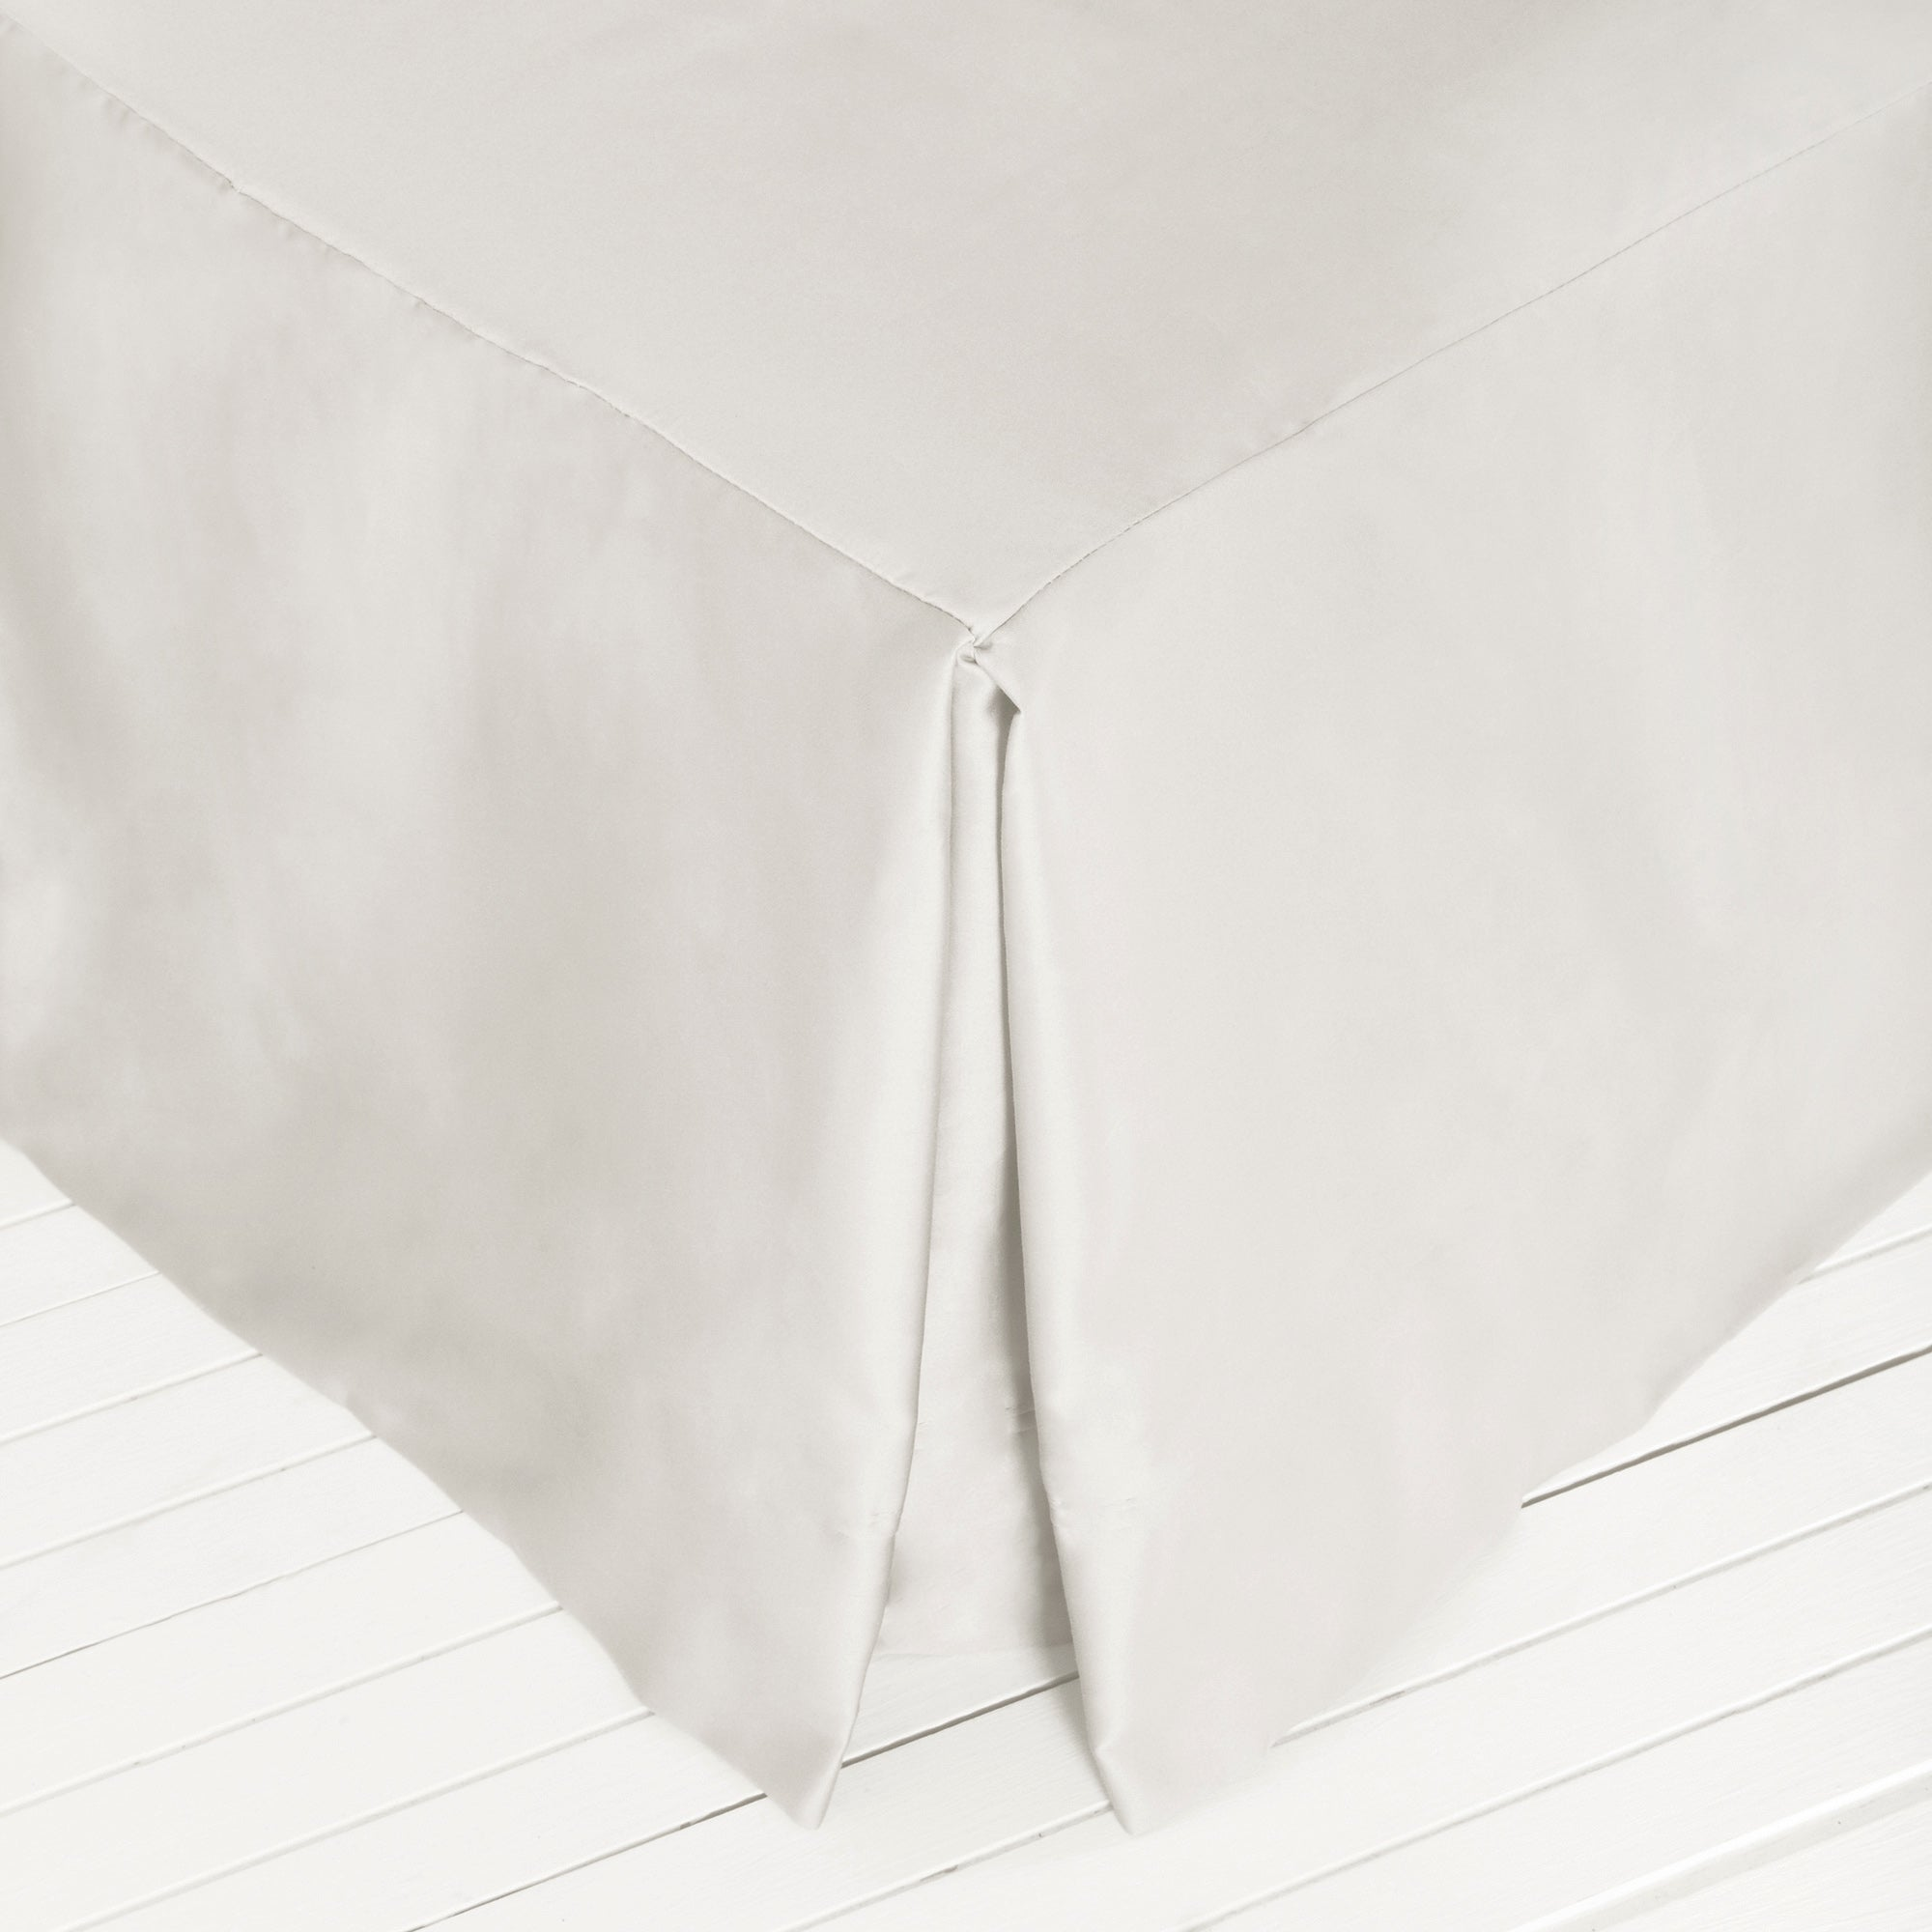 Image of Dorma 500 Thread Count Cotton Satin Porcelain Divan Valance Porcelain